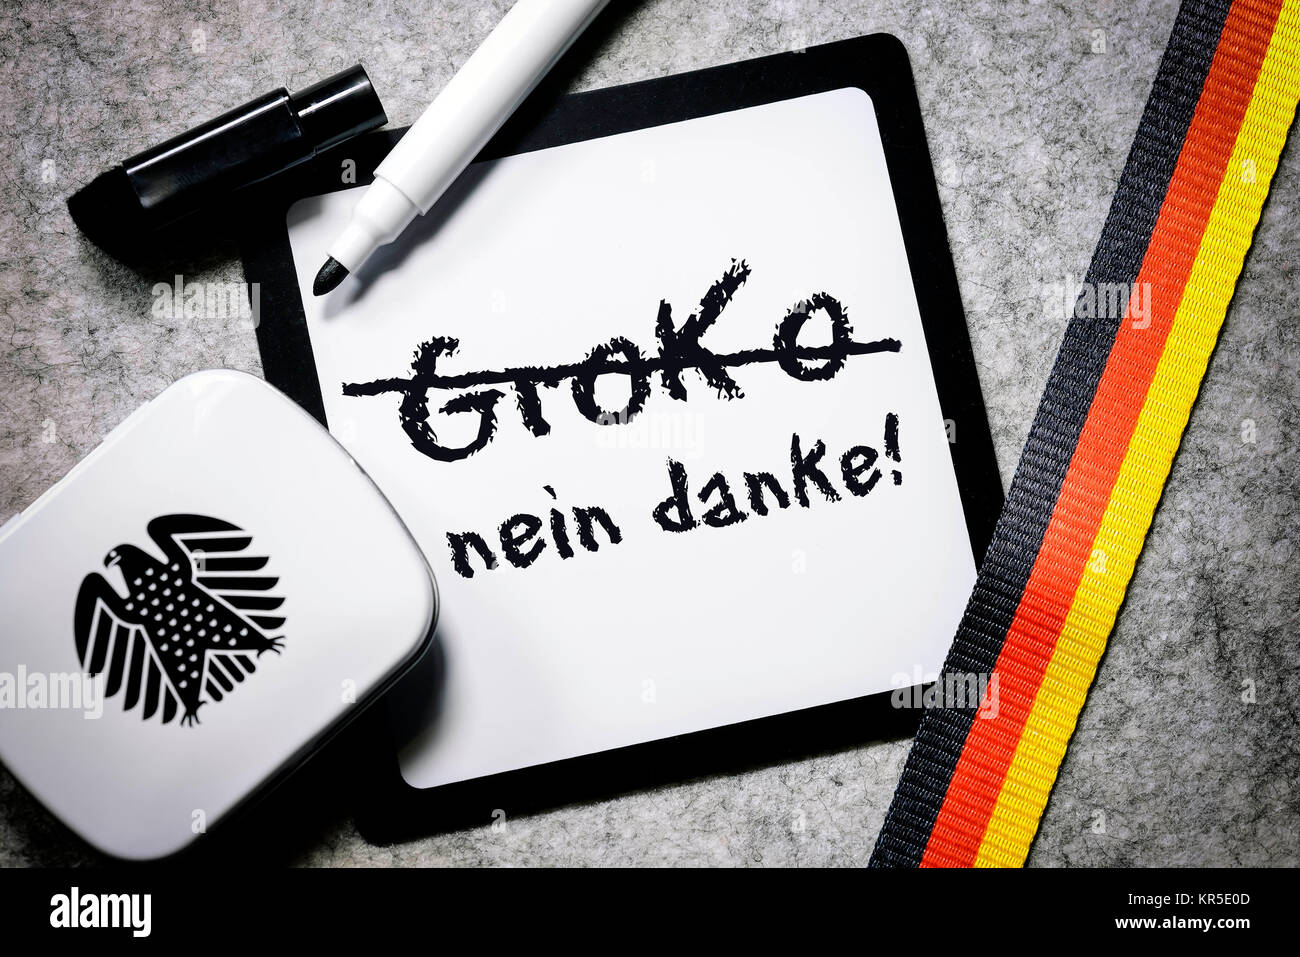 Writing board with the label Groko and no thanks, opposition against the grand coalition, Schreibtafel mit der Aufschrift Stock Photo